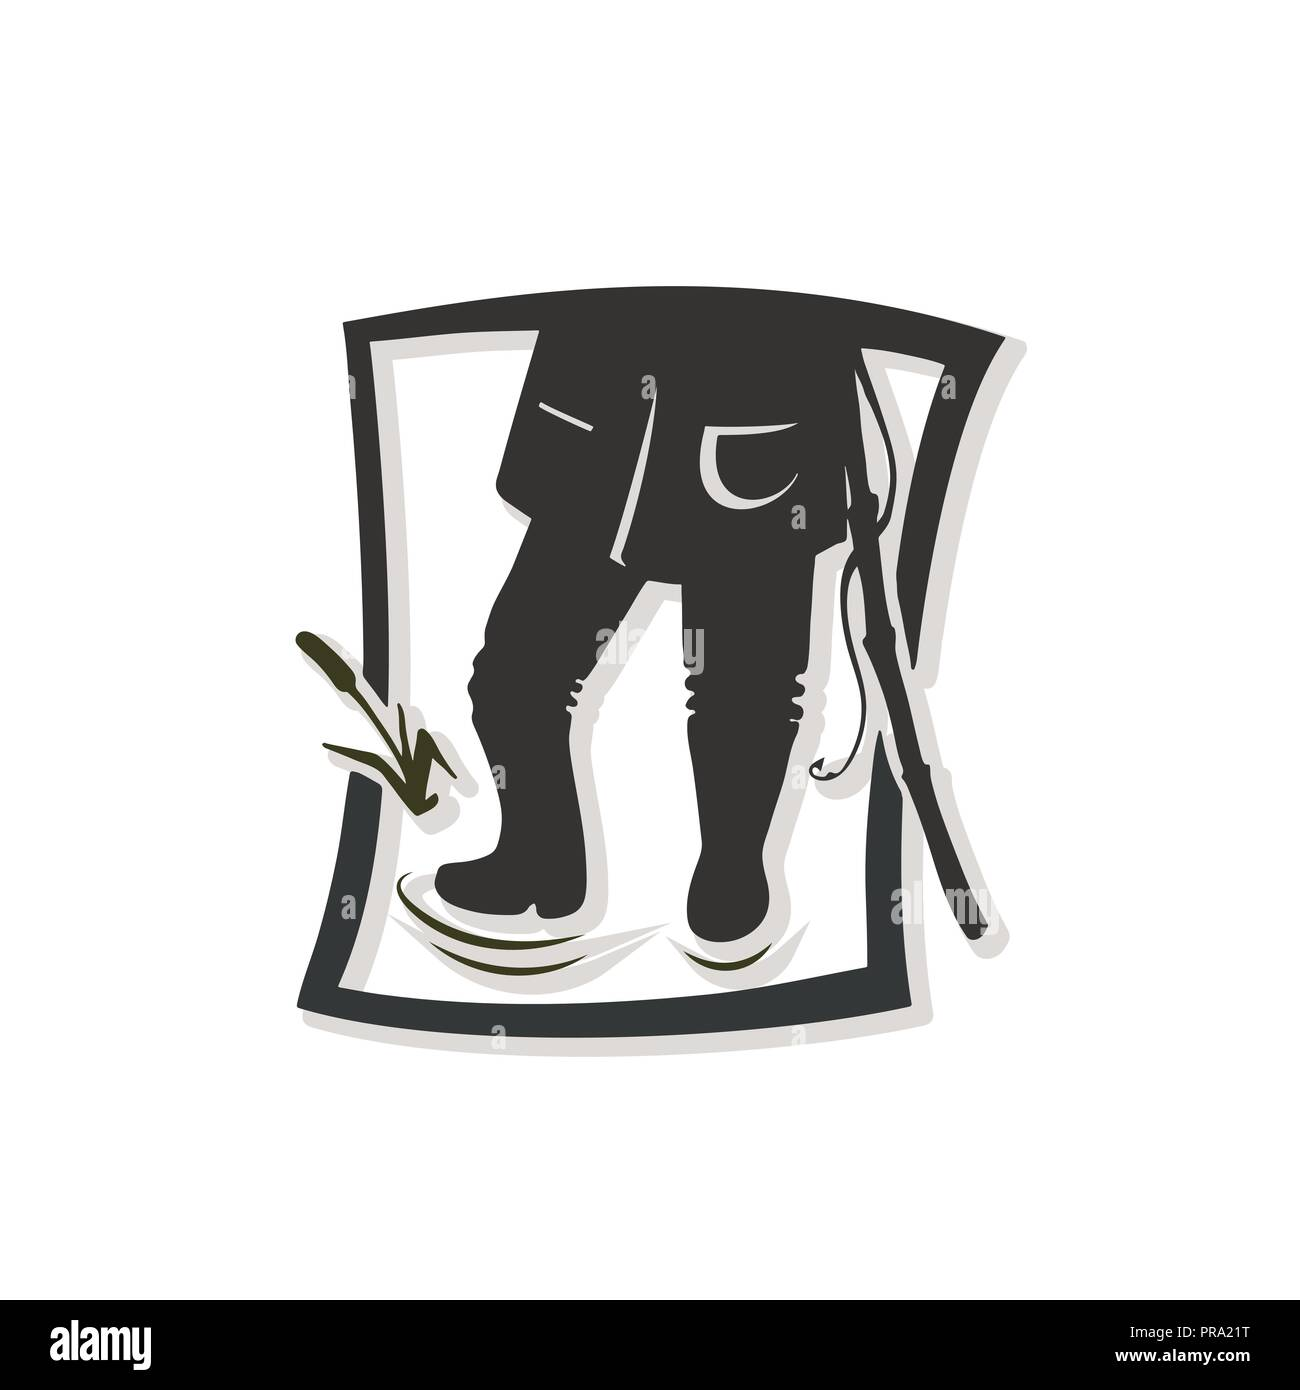 Silhouette of fisherman. Vector illustration. Logotype of the fishing shop. - Stock Image